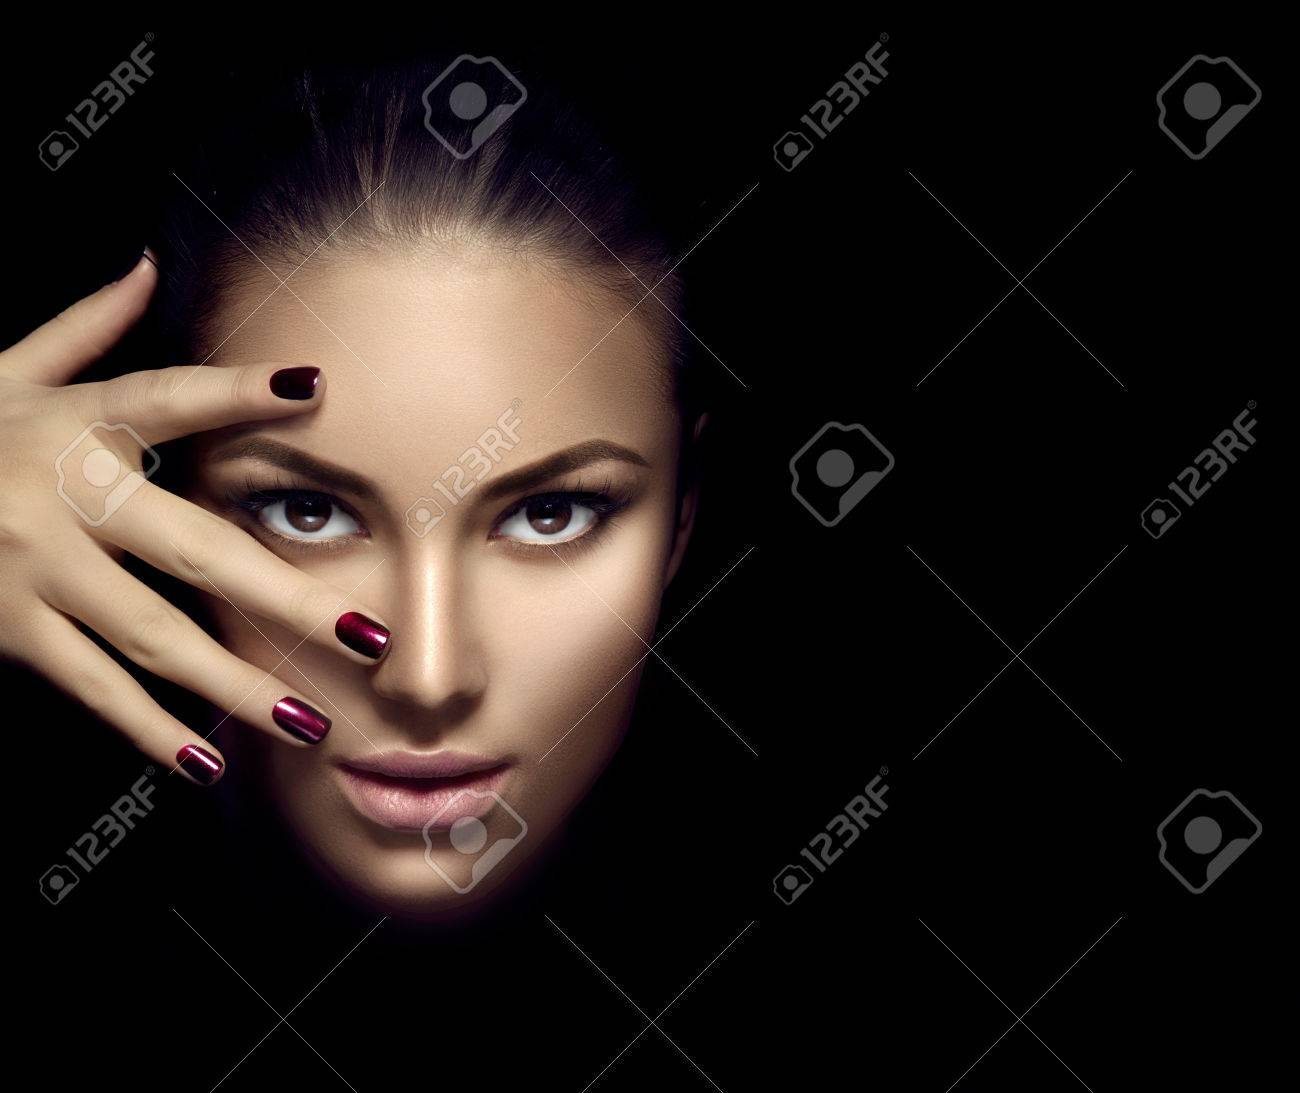 Fashion model girl face, beauty woman makeup and manicure over dark background Banque d'images - 65640848